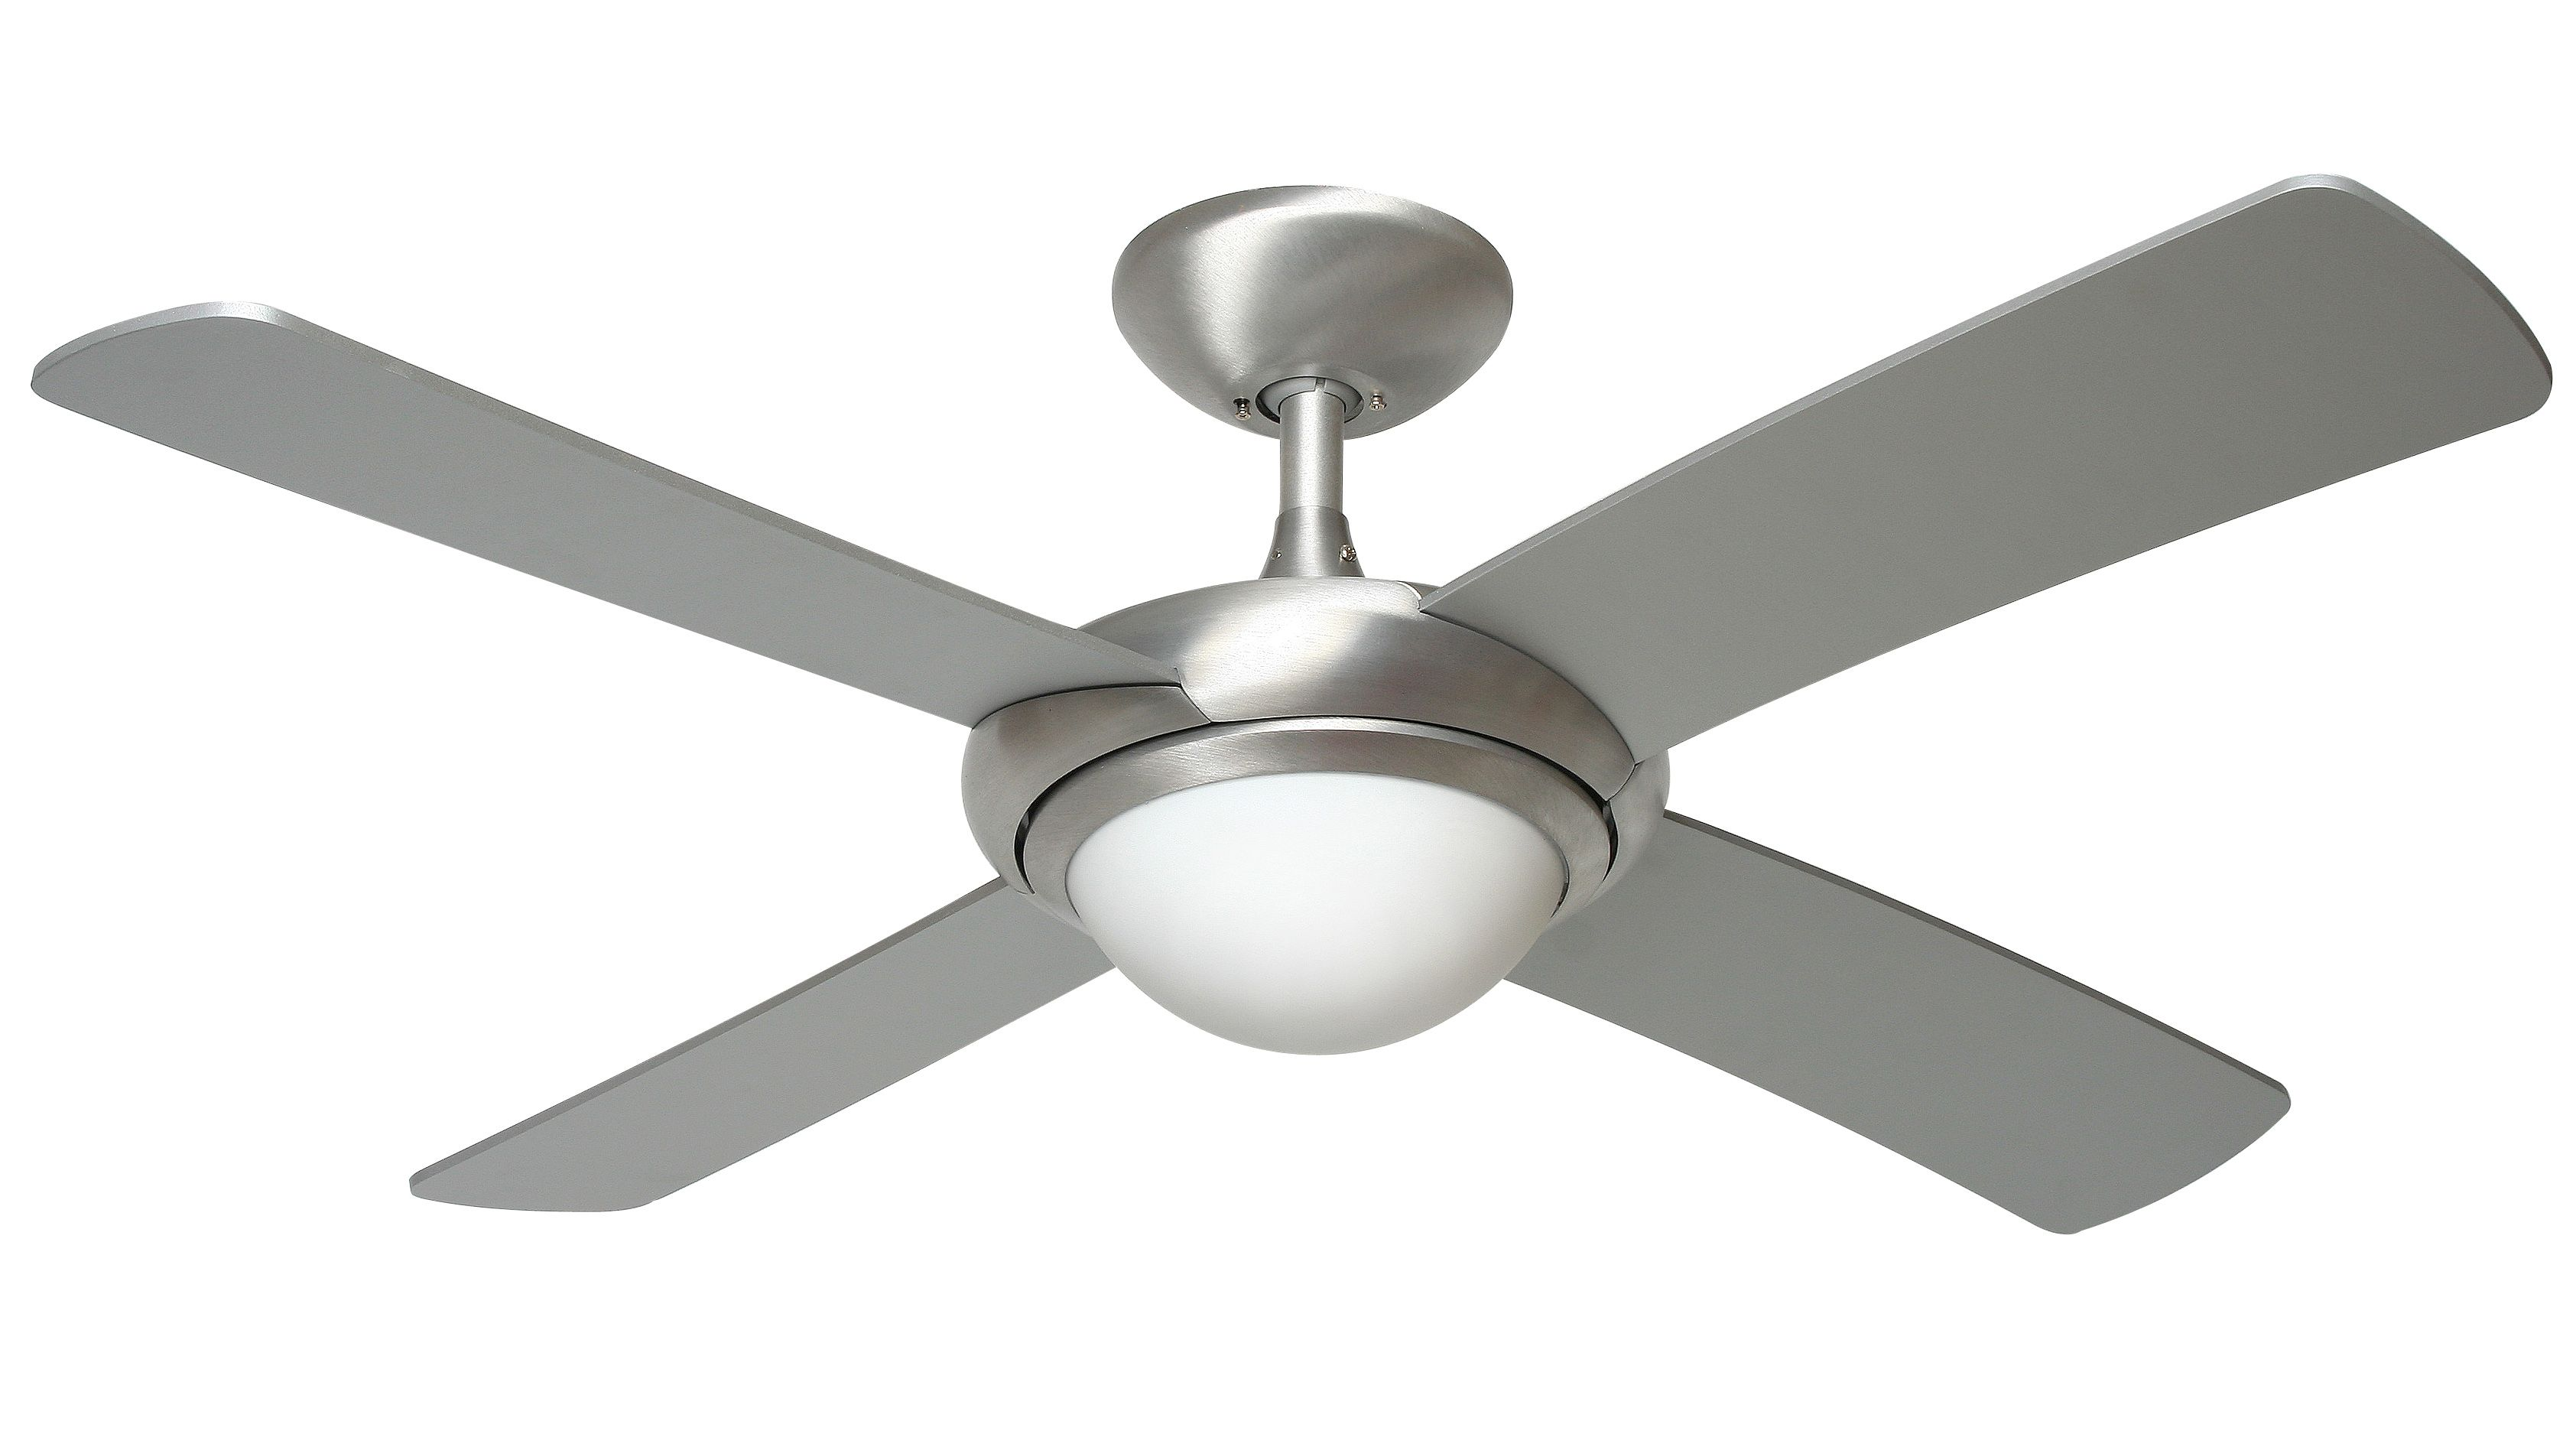 Fantasia orion 44 brushed aluminium ceiling fan remote control light fantasia orion 44 brushed aluminium ceiling fan remote control light 115311 aloadofball Choice Image